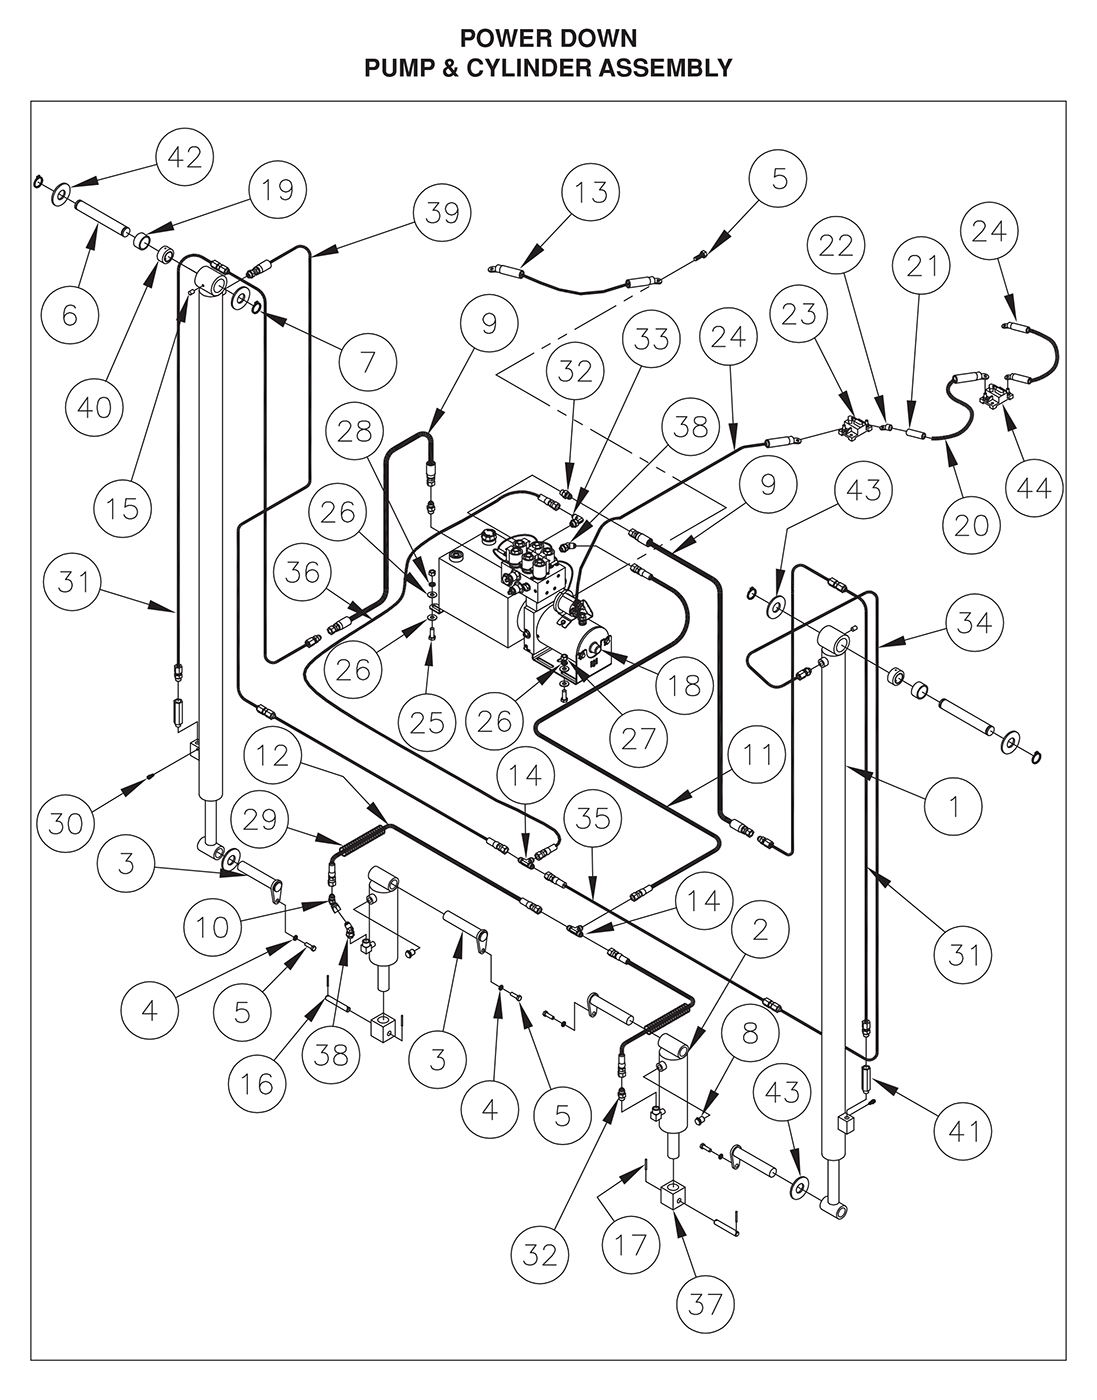 TDR 44/55/66 Pump & Cylinder Assembly (Power Down) Diagram